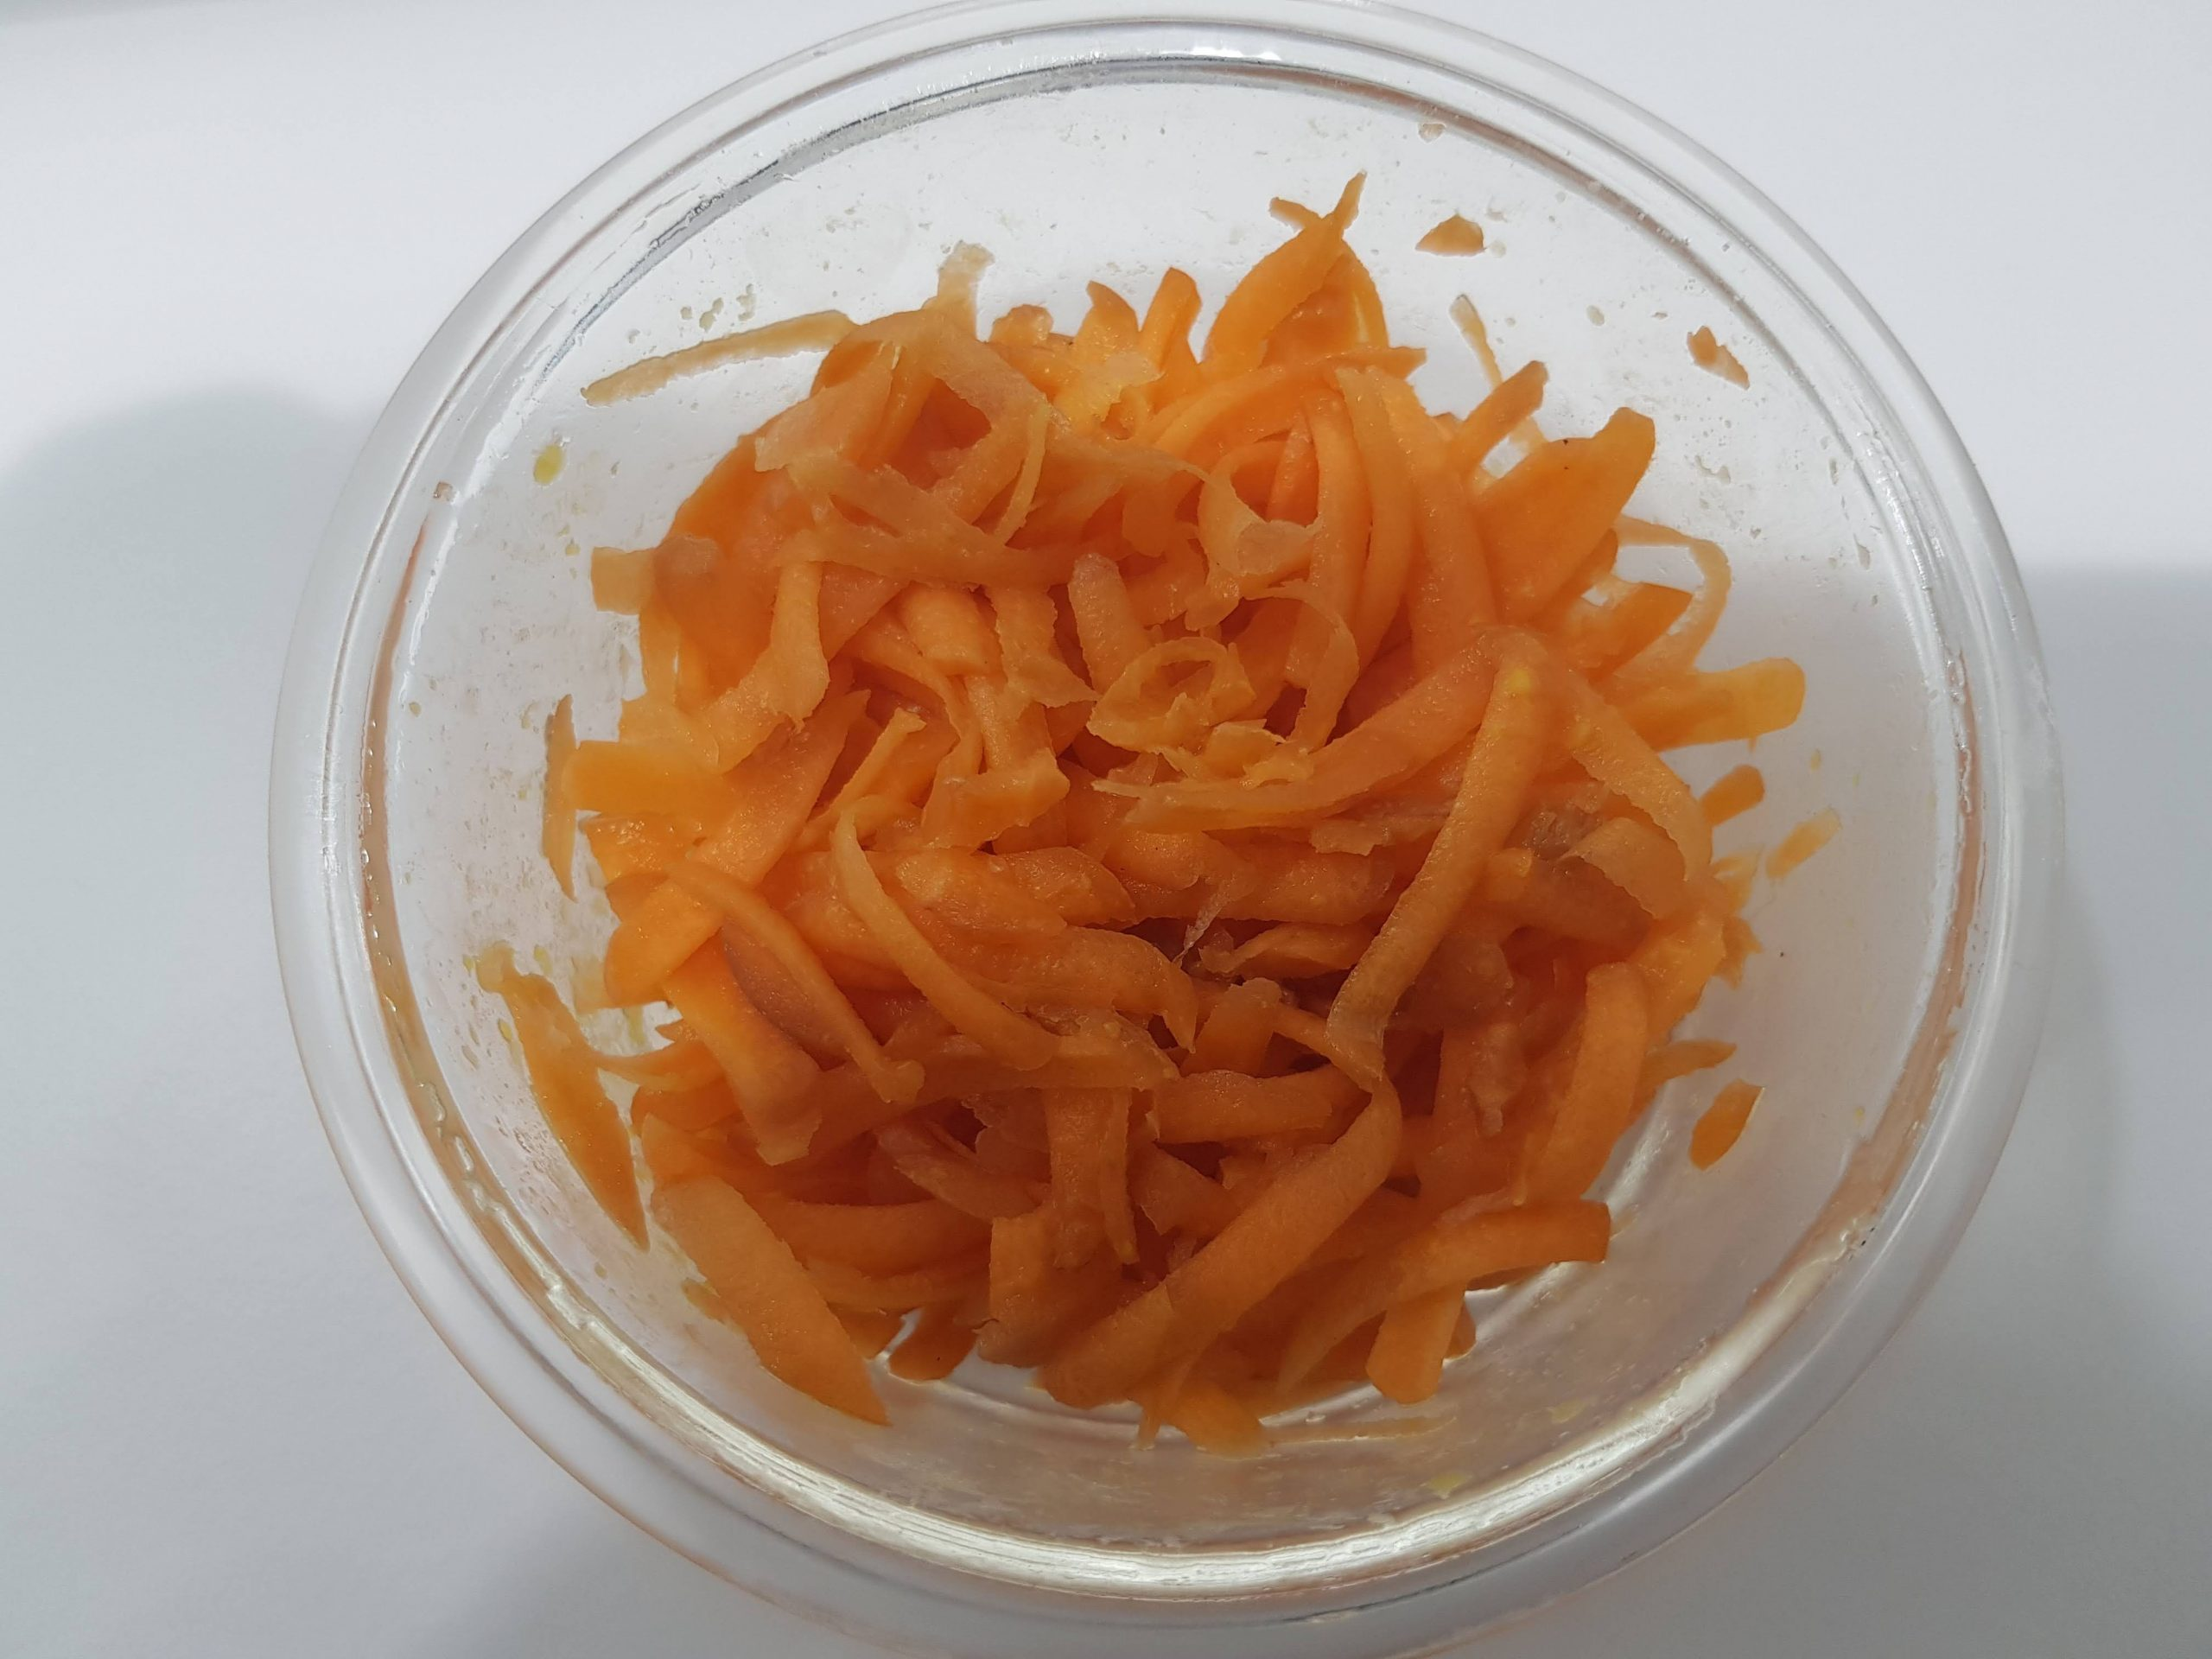 grated carrot in a glass bowl